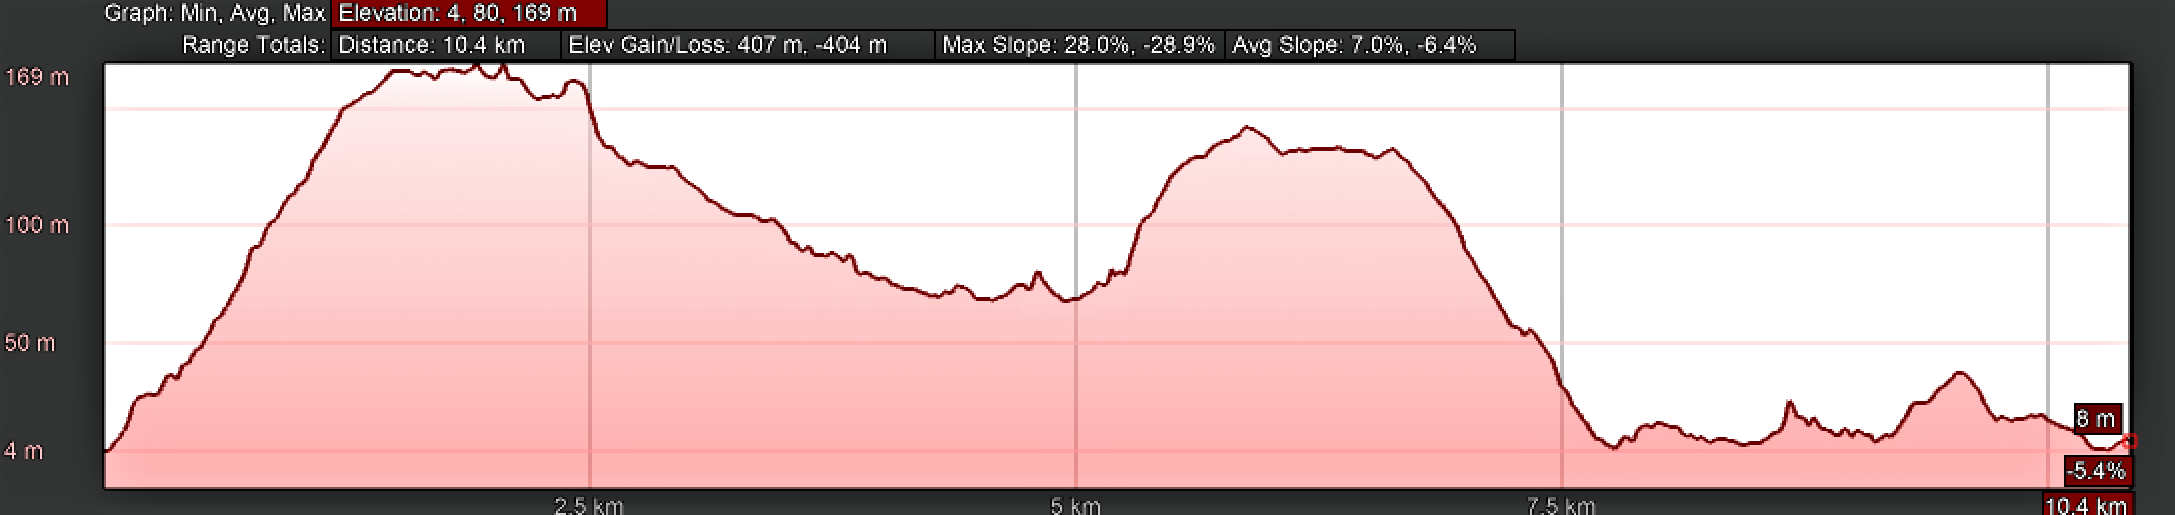 Elevation Profile, Day Three on the Camino Inglés, Pontedeume to Miño